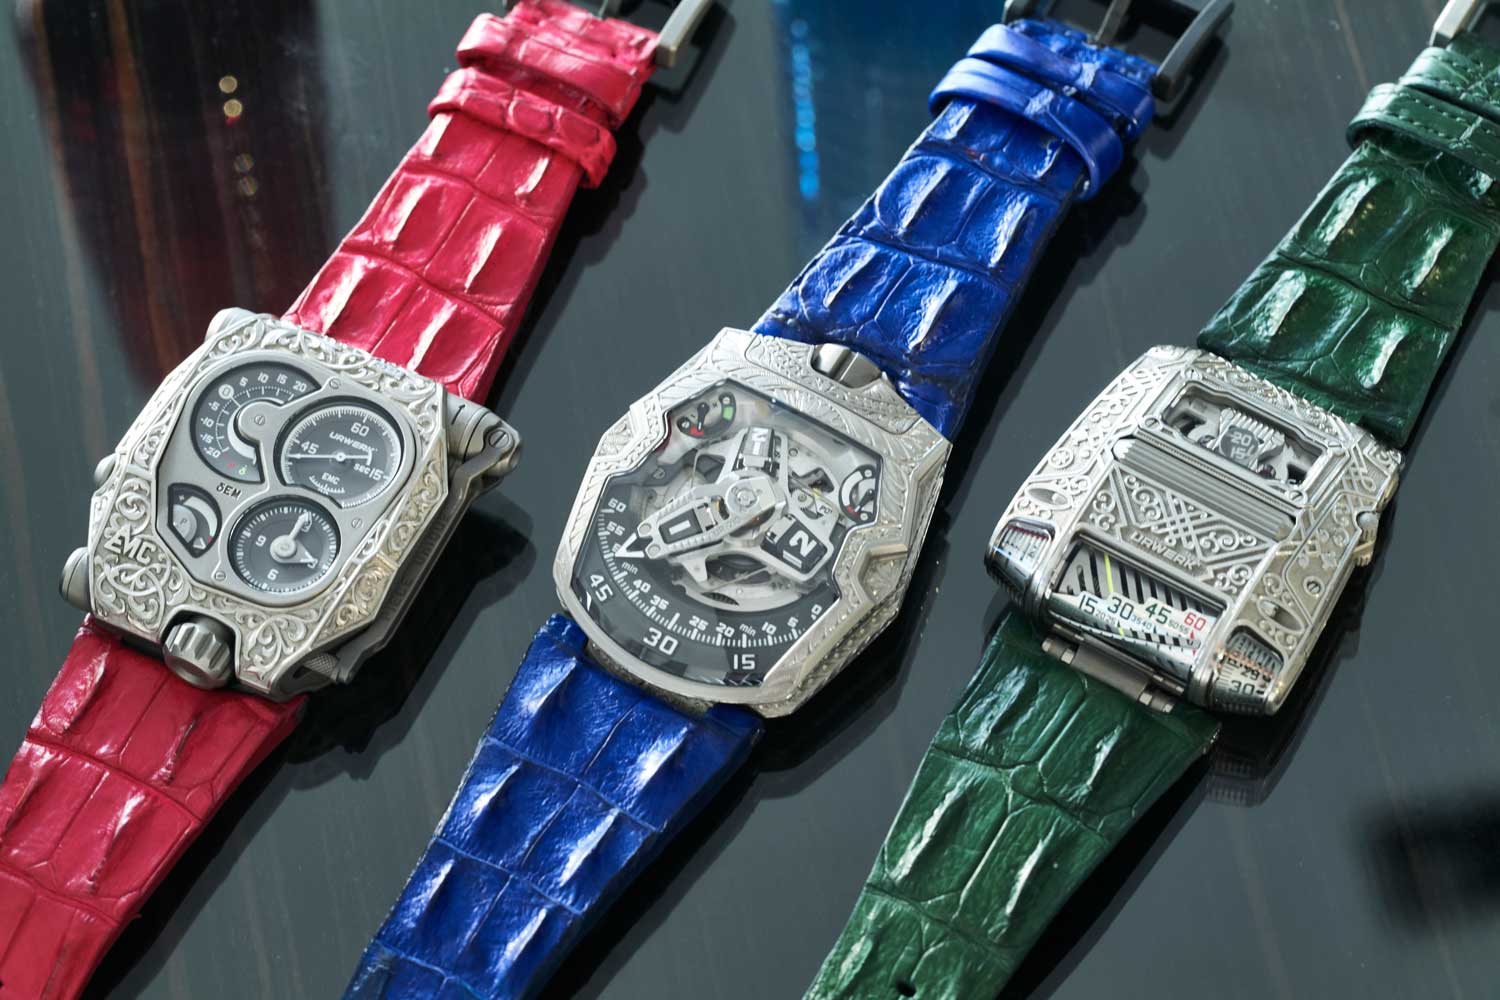 Santa Laura's collection of URWERK pièces unique engraved by Florian Güllert, the EMC, 210 and 111; the UR-111 is even made with personalized green numerals (©Revolution)